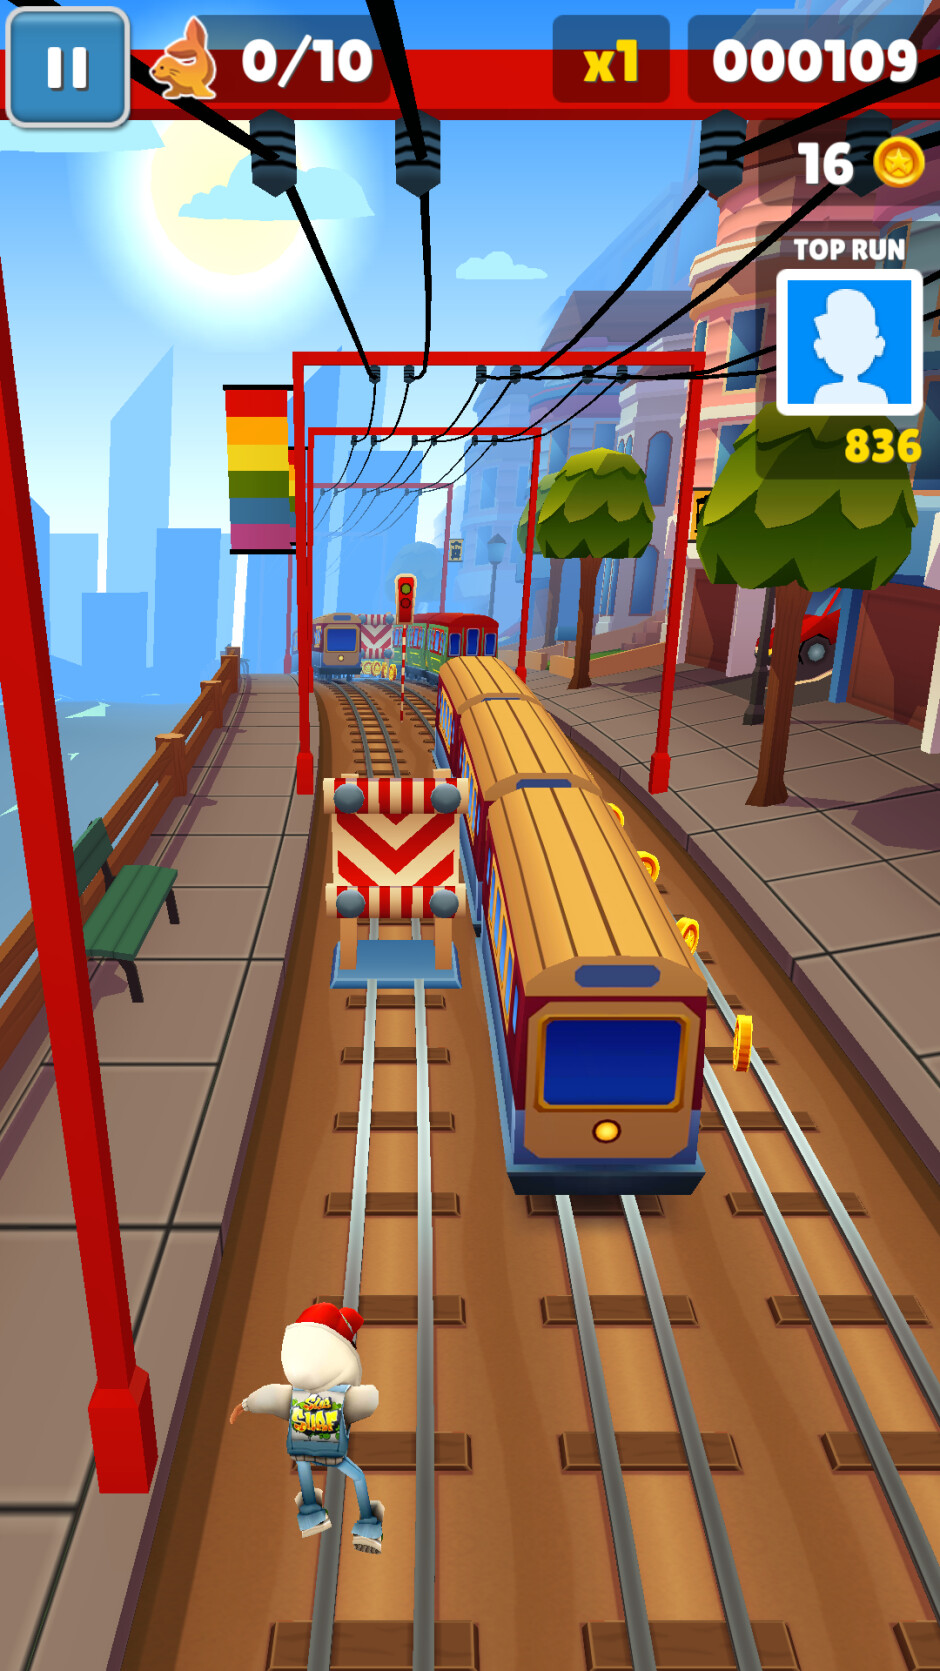 Subway Surfers has been among the top apps for years now. - 5 things I hate about mobile games and why they're actually good